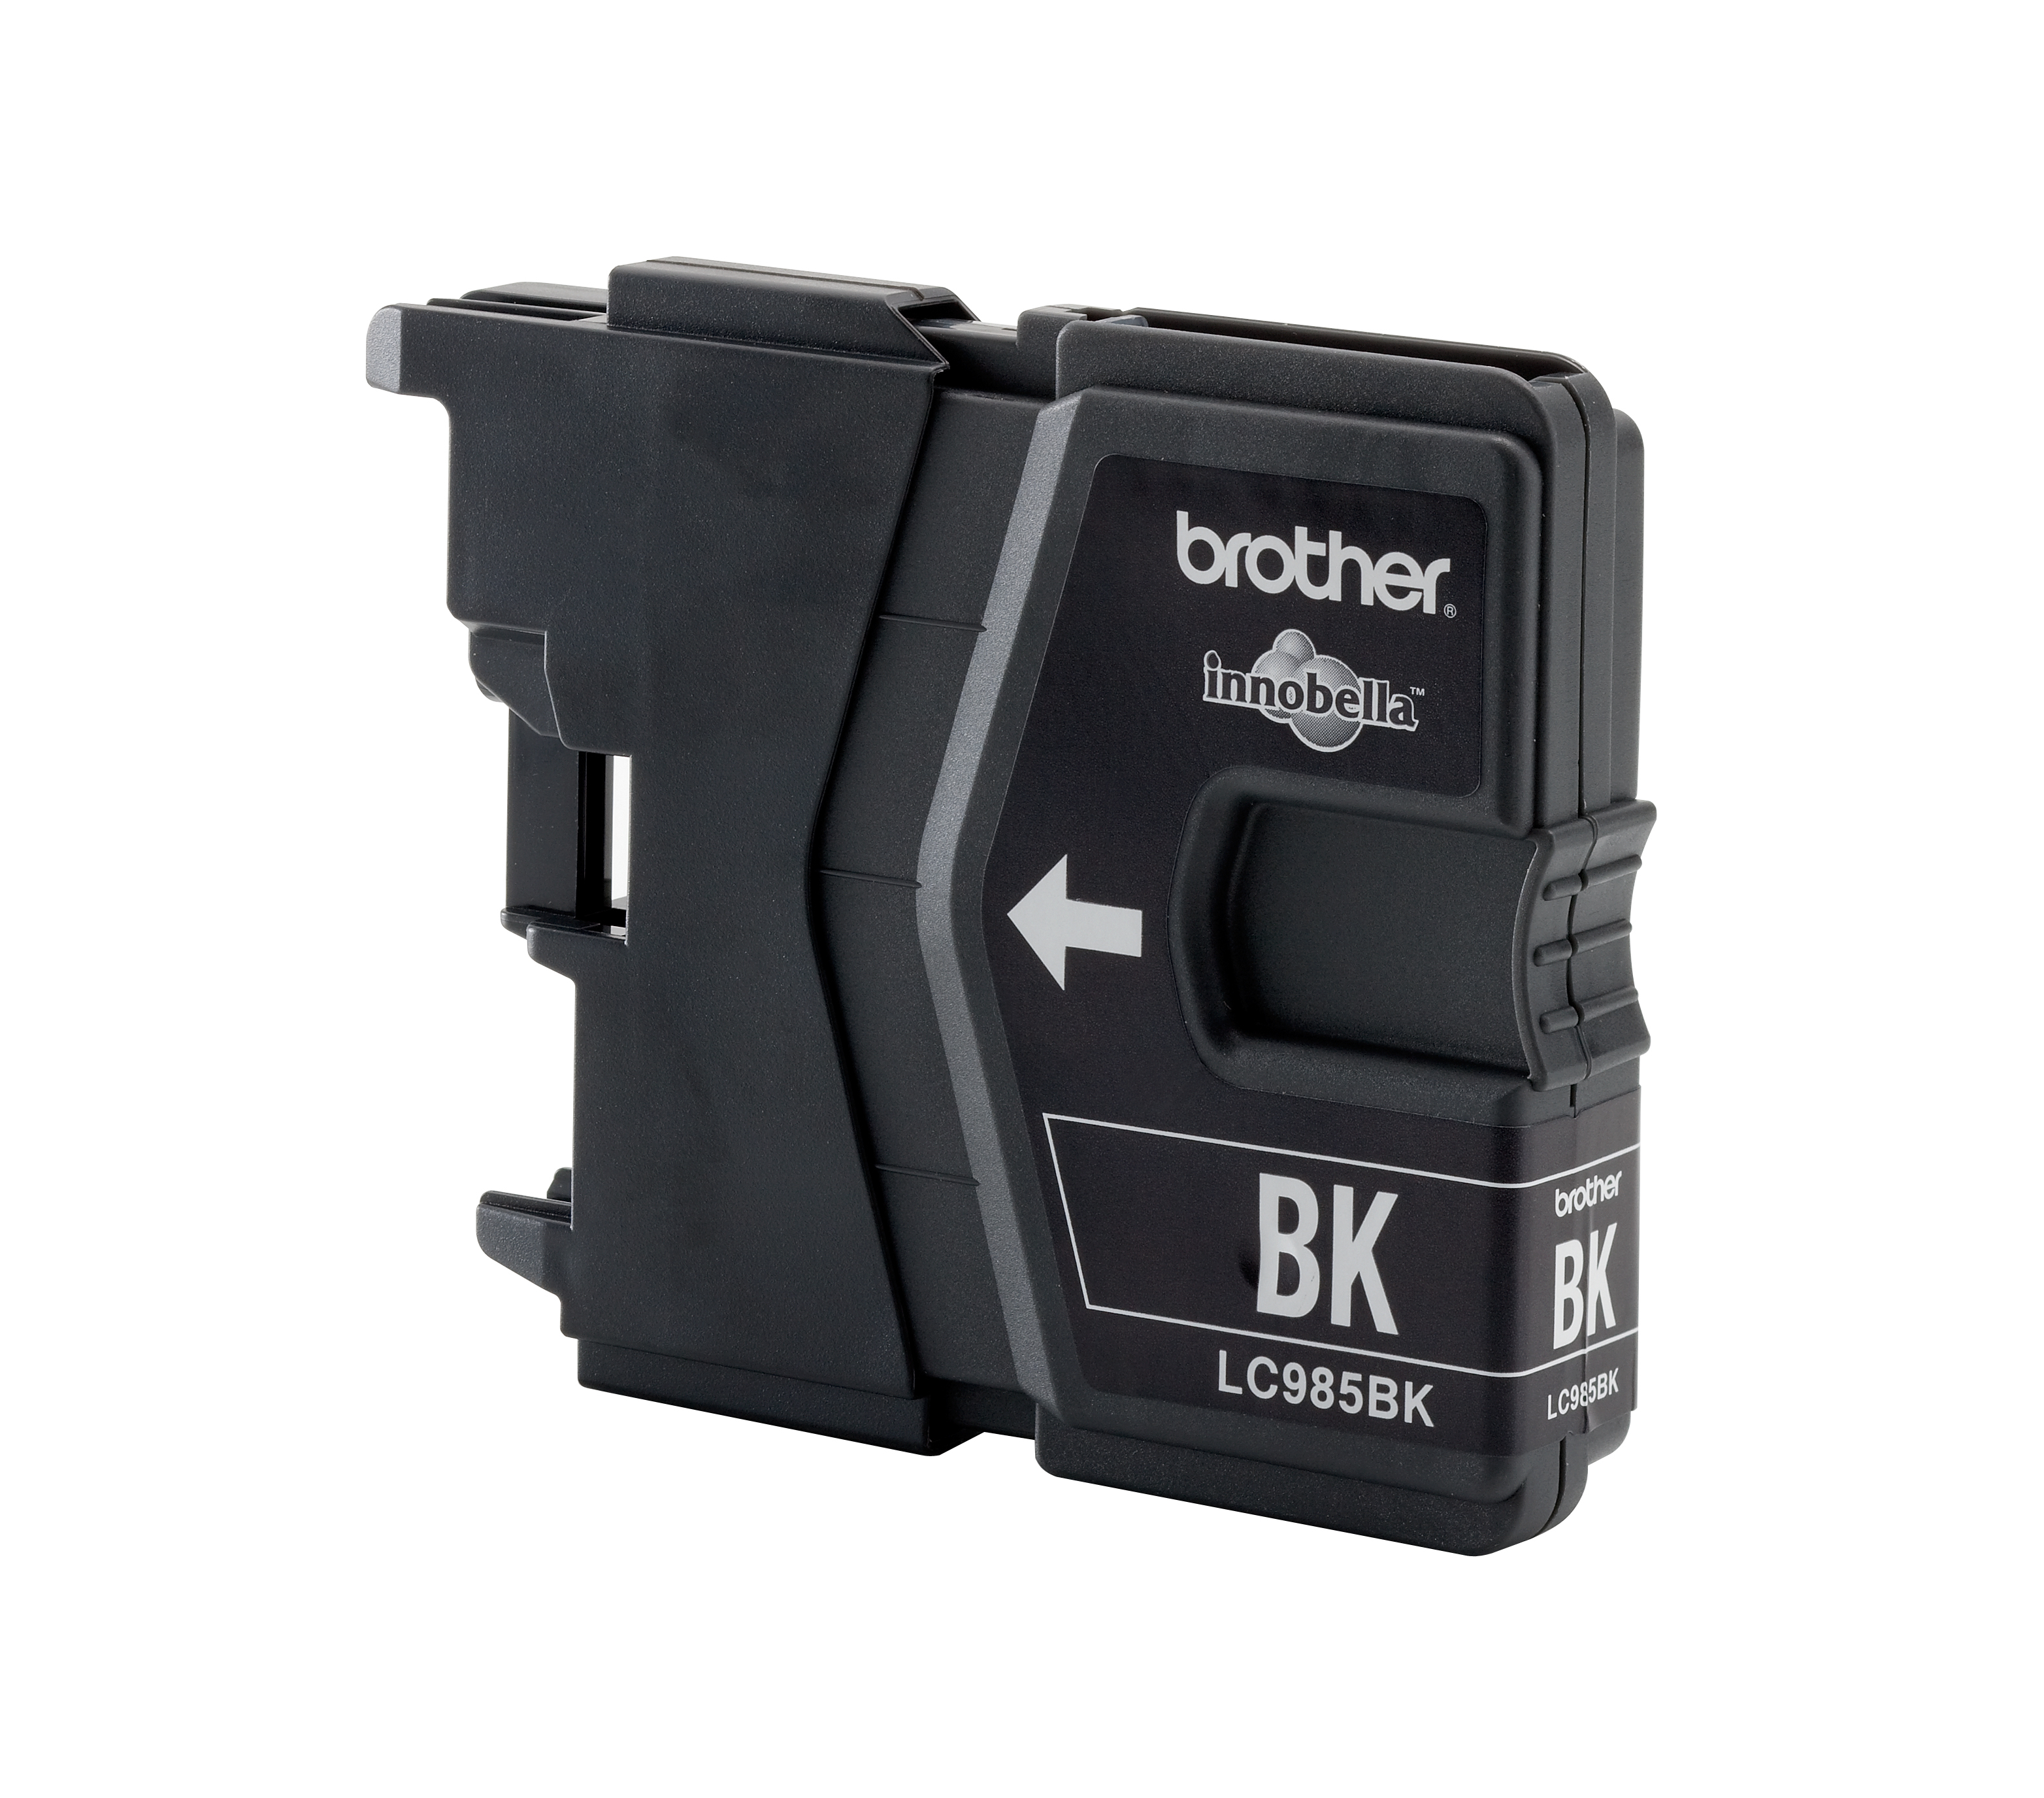 Image of Brother Ink Cartridge Lc985Bk Black 300 Pages